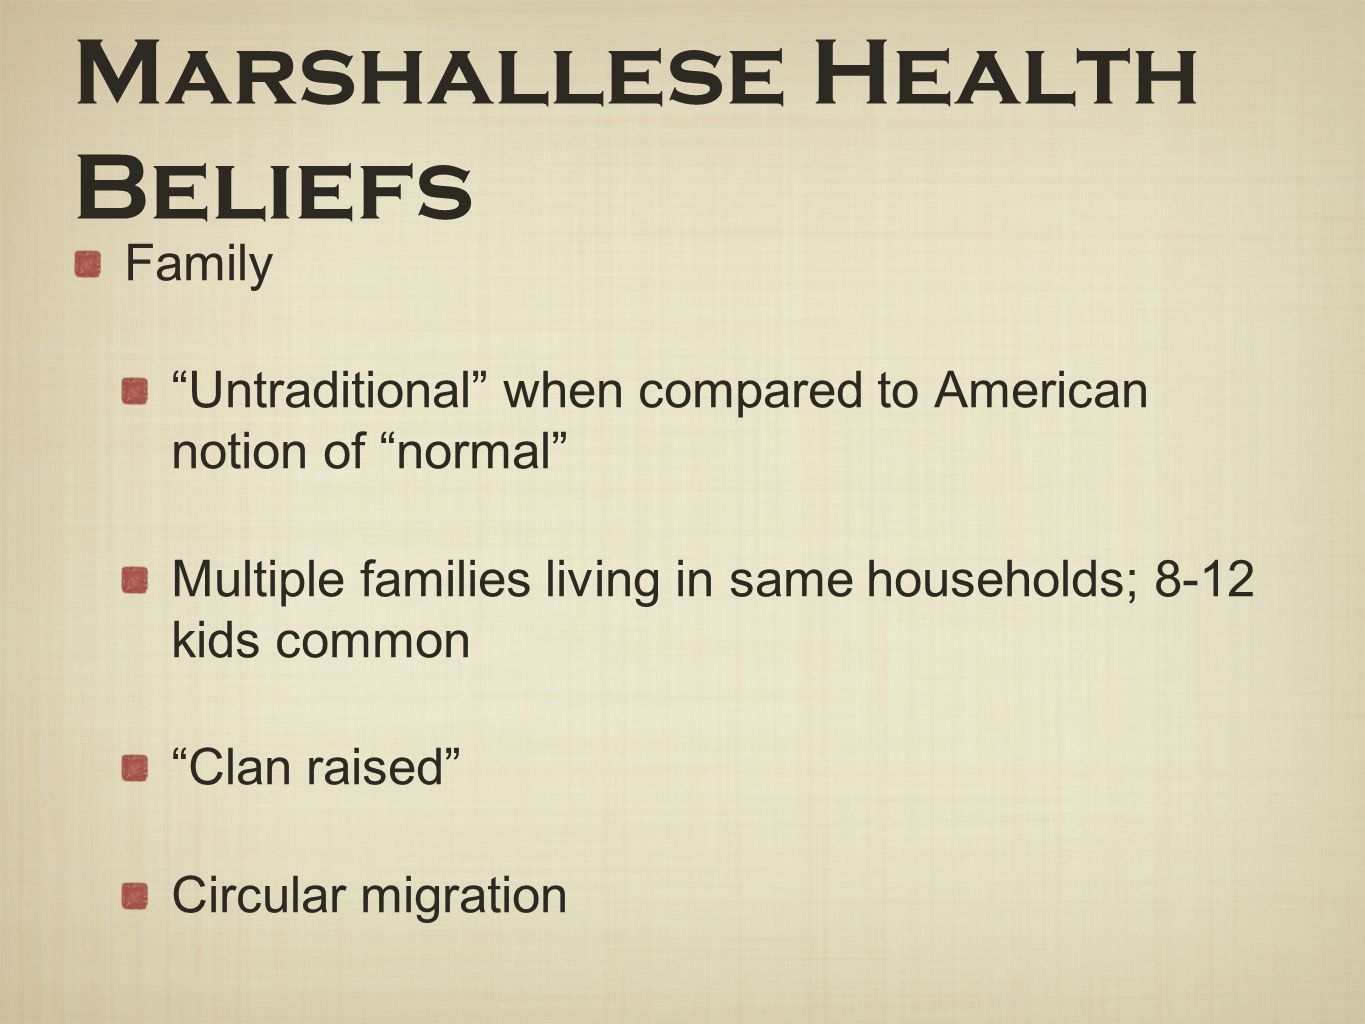 Marshallese Health Beliefs